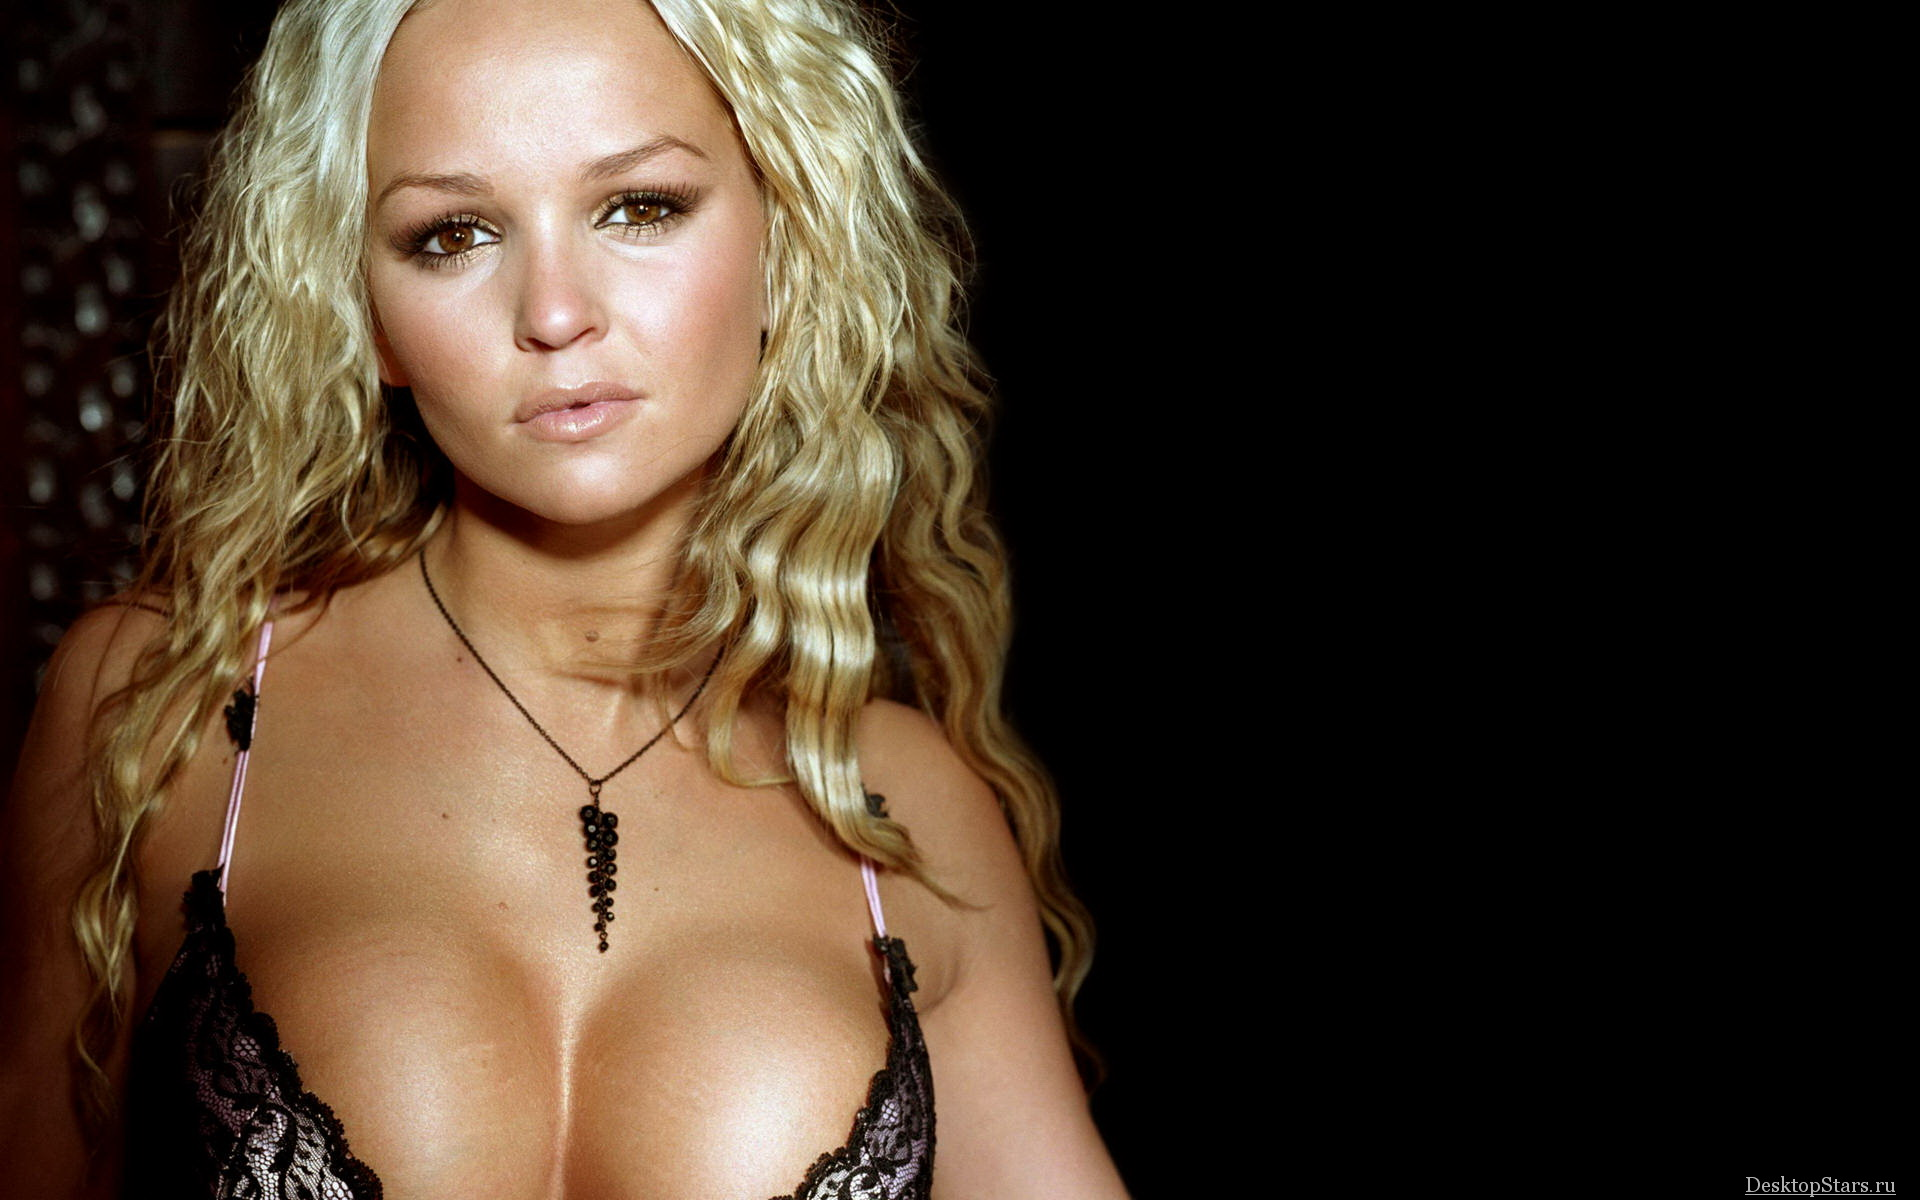 http://www.desktopstars.ru/md/jennifer-ellison/1920x1200/Jennifer-Ellison-1920x1200-006.jpg